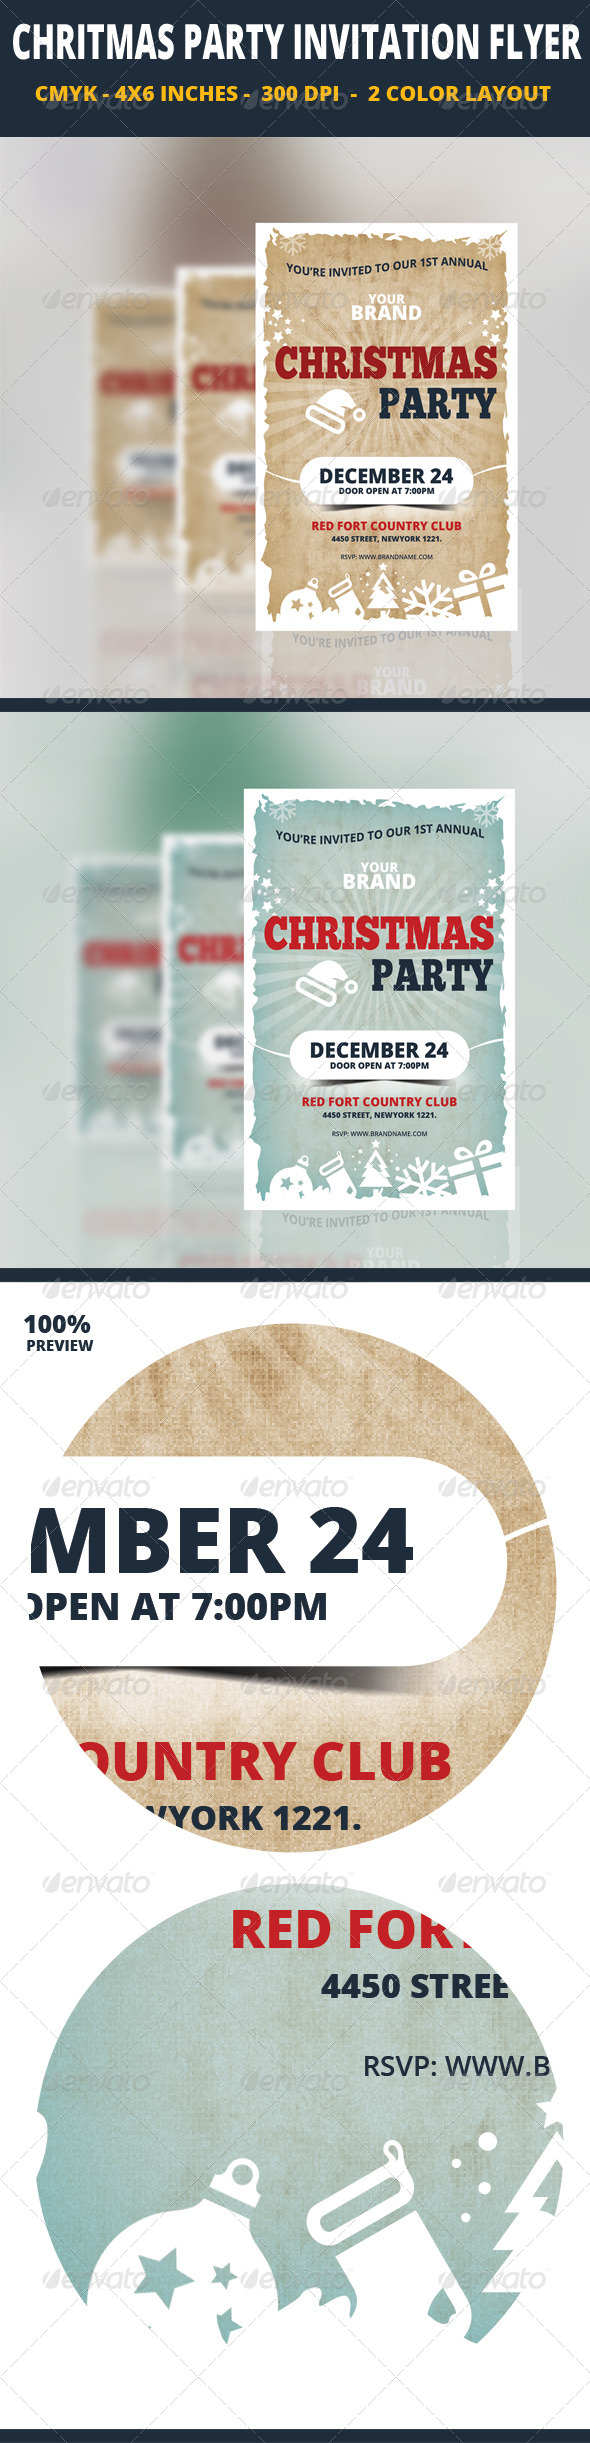 GraphicRiver Christmas Party Invitation Flyer Template 6332787